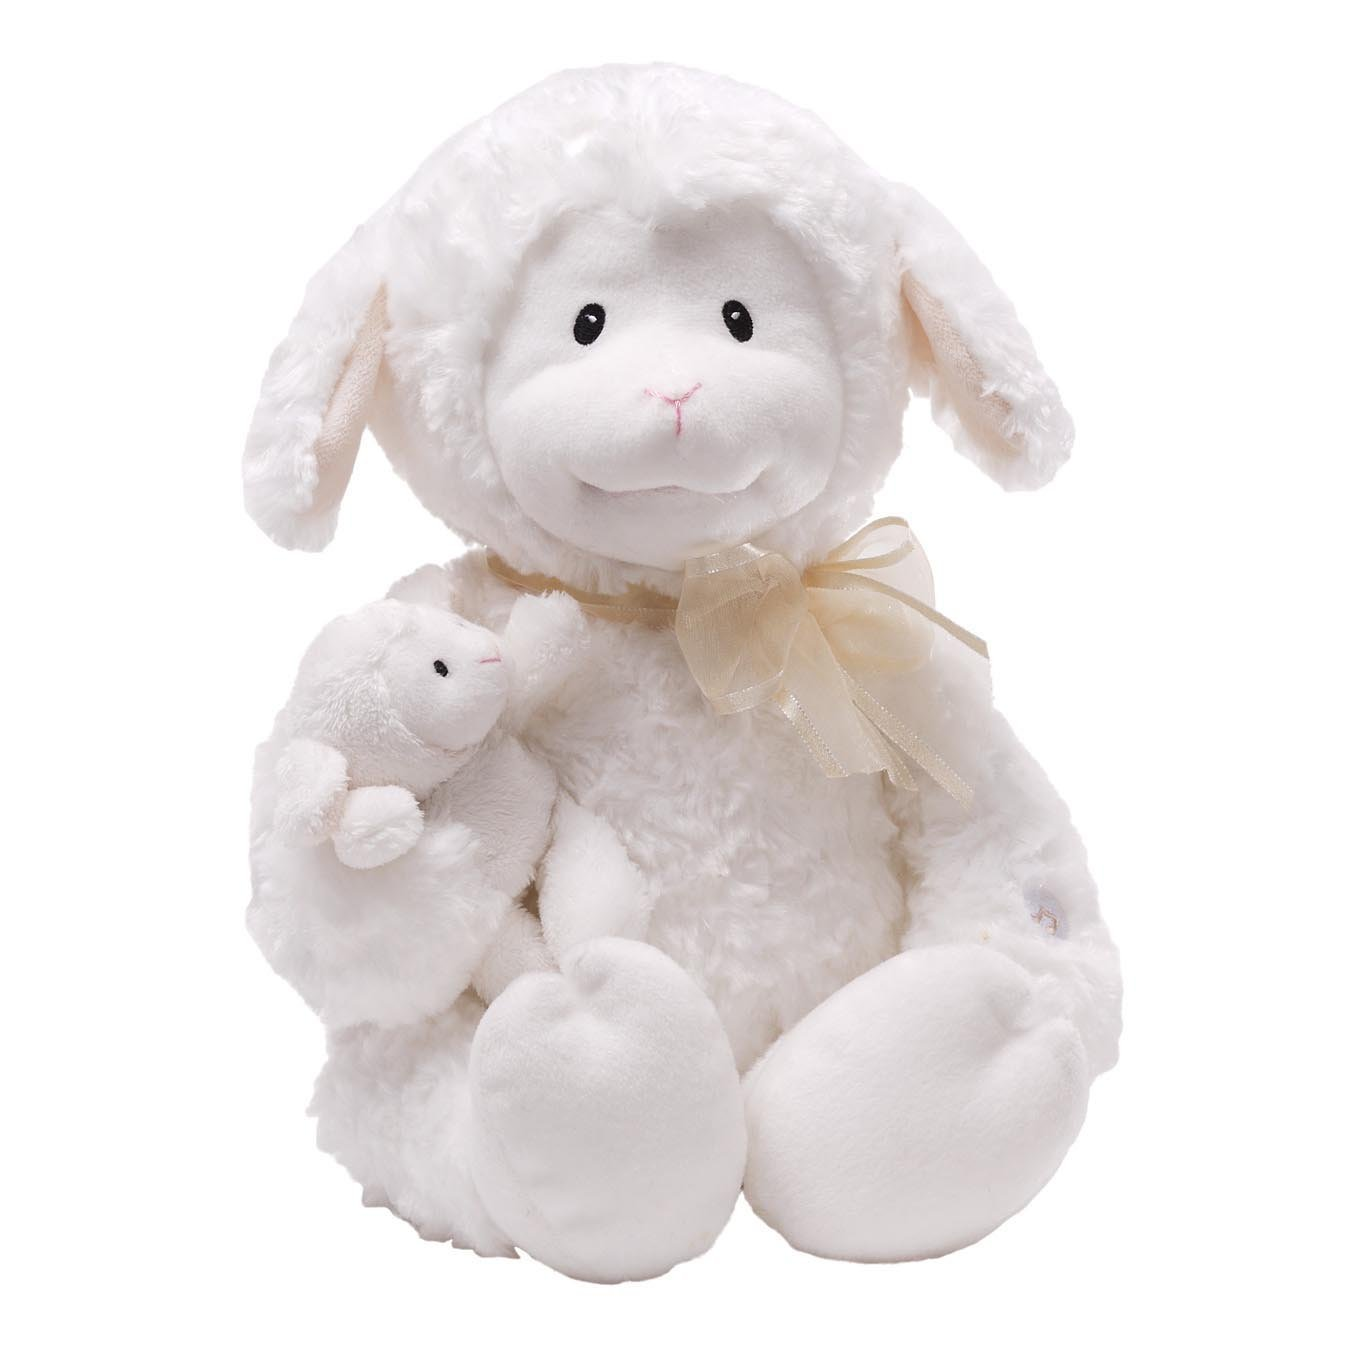 GUND Nursery Rhyme Time Lamb Animated Stuffed Animal Plush, White, 10'' by GUND